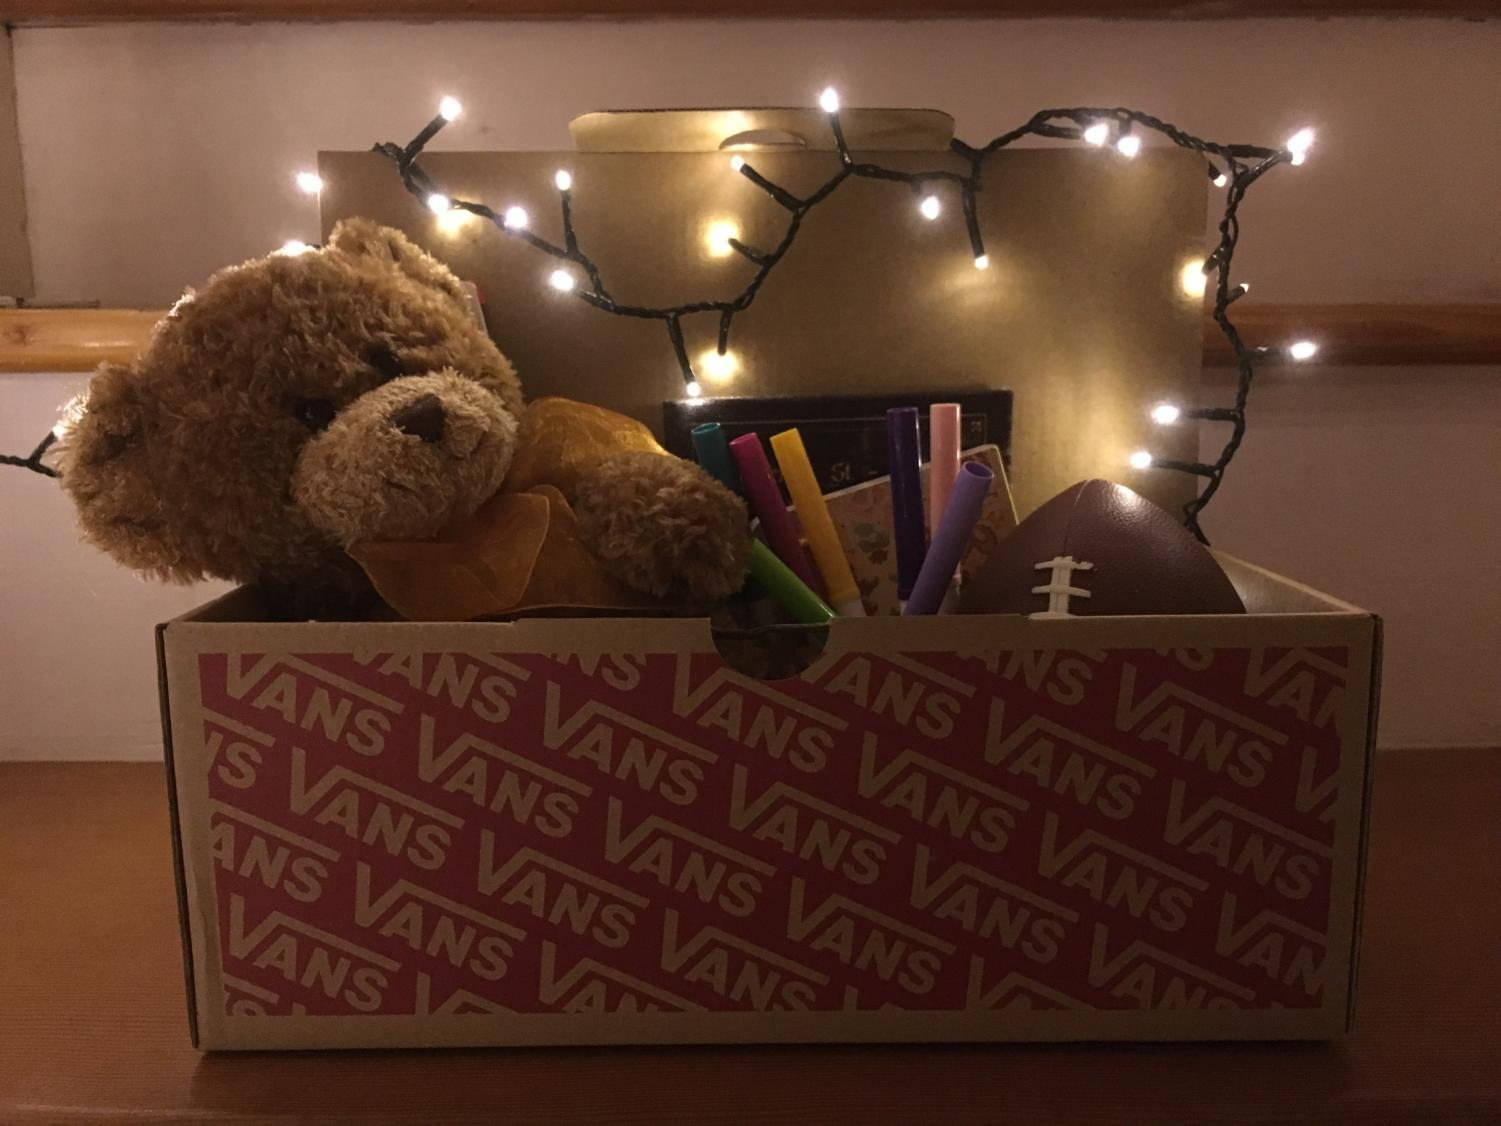 A shoebox filled with treats bring happiness to children in need during the holiday season.